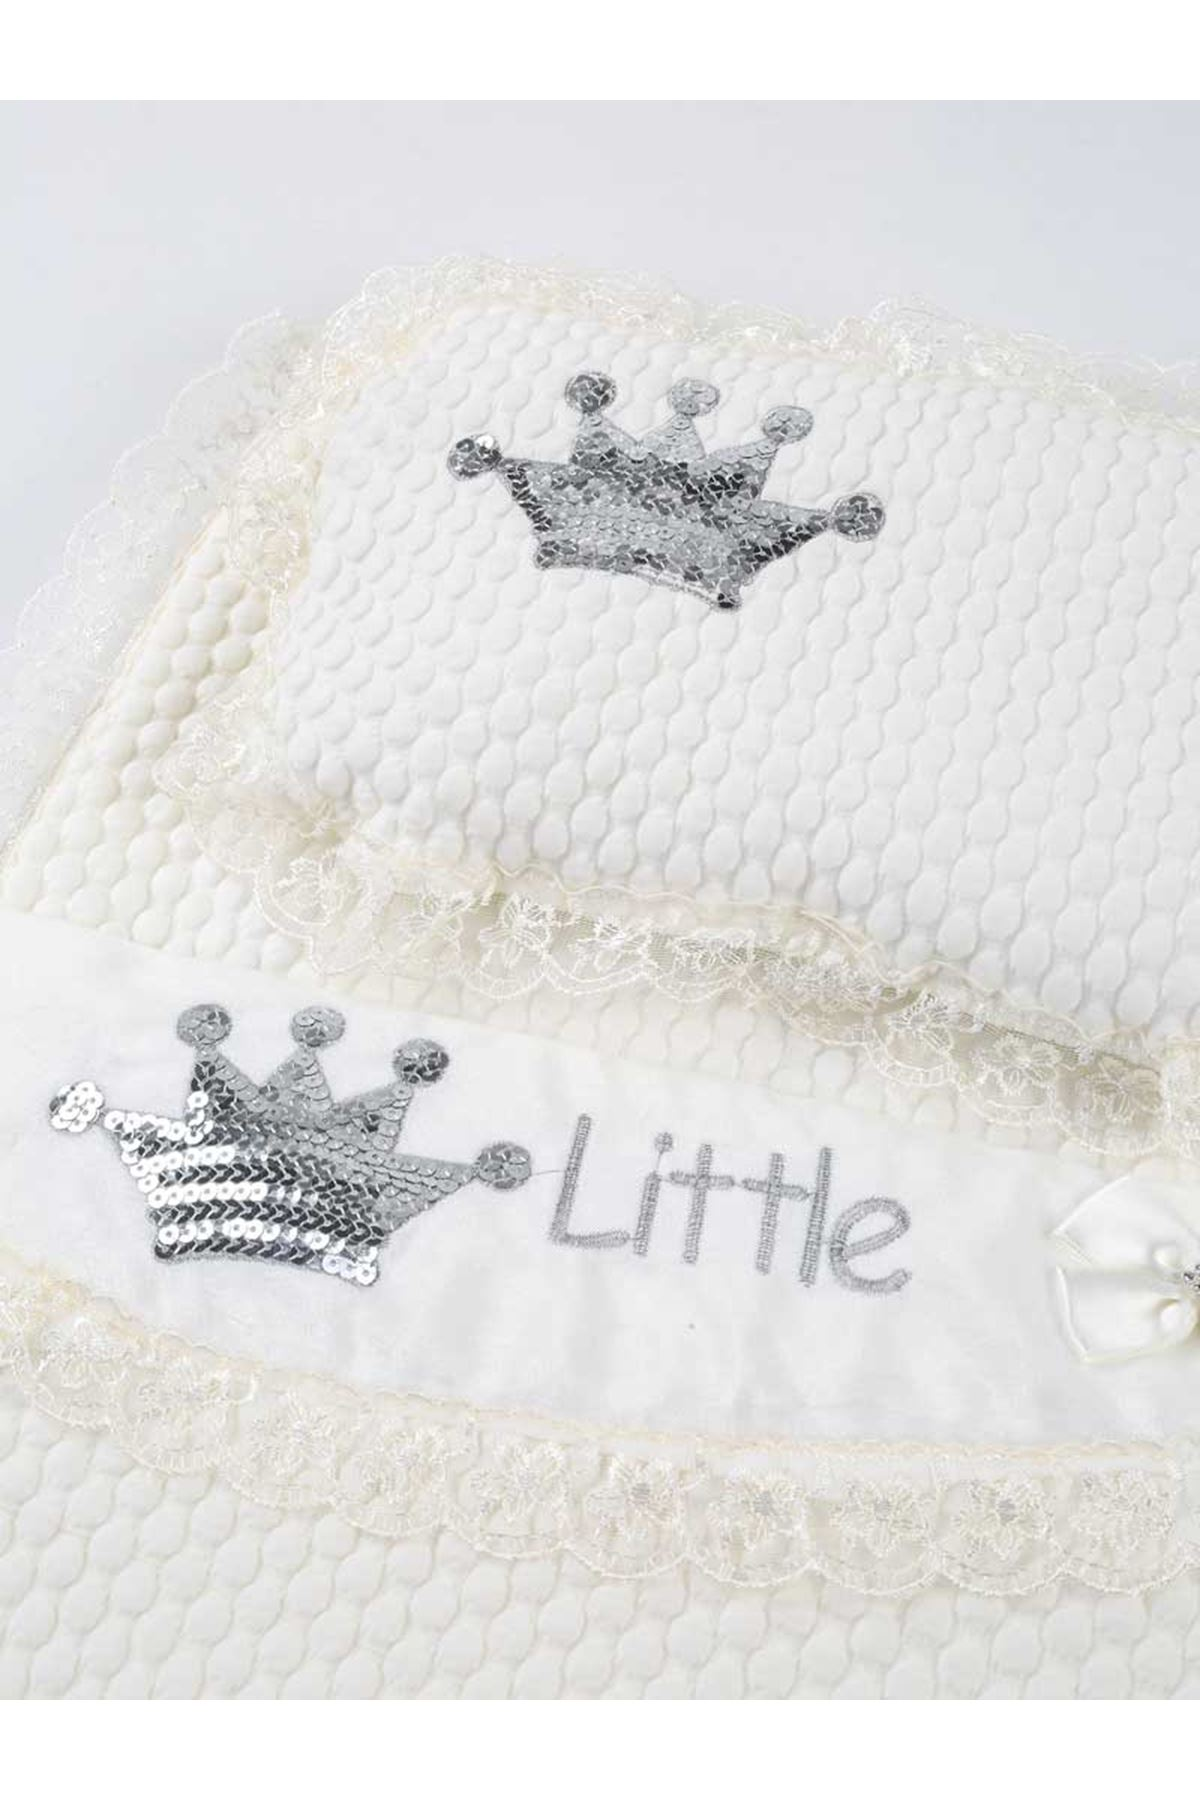 White Baby Girl Boy Swaddle King Crown The Little Prince Cotton Soft Bottom Opening Babies Newborn Stroller Bed Sweatproof Model